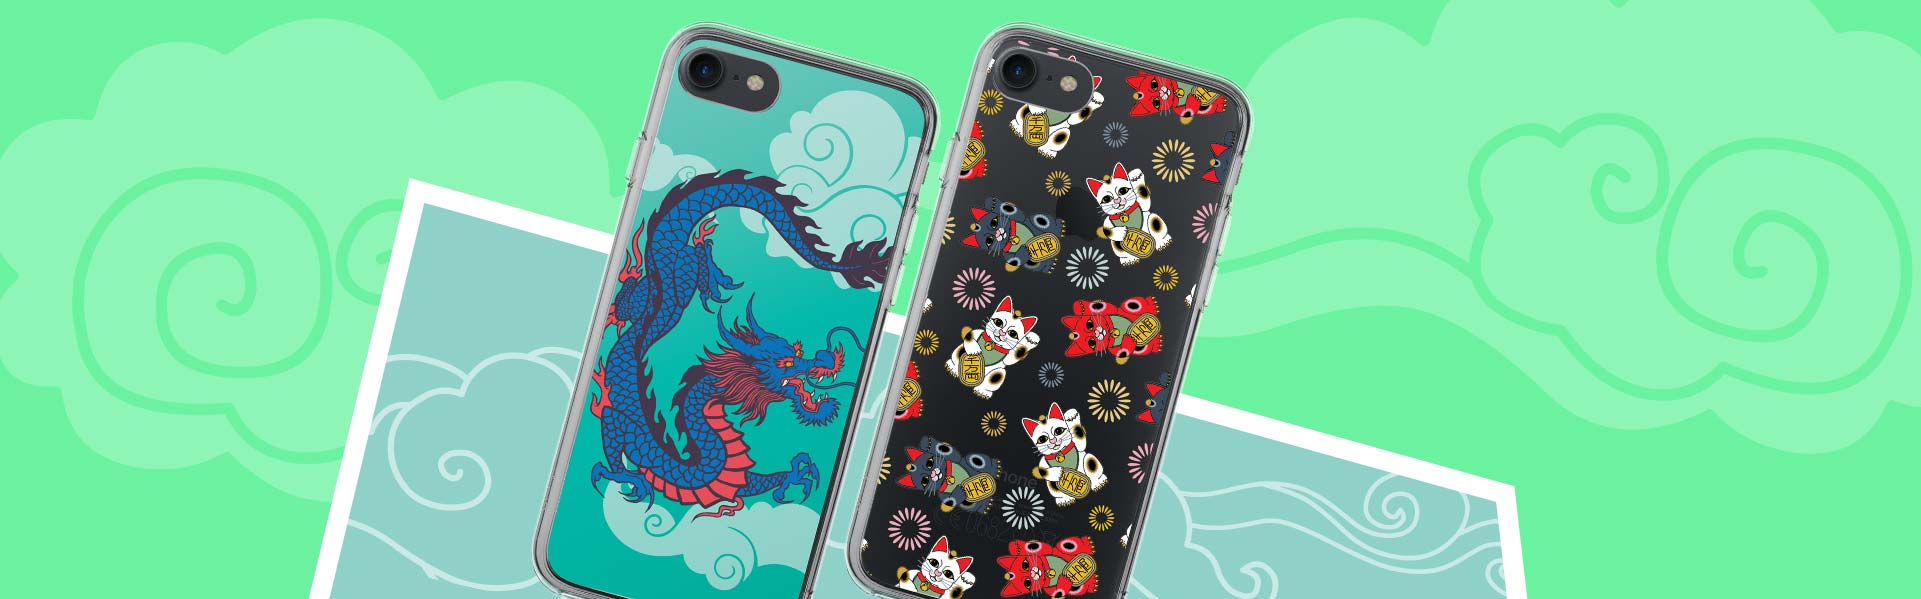 Custom Phone Cases And Covers Switch Uae